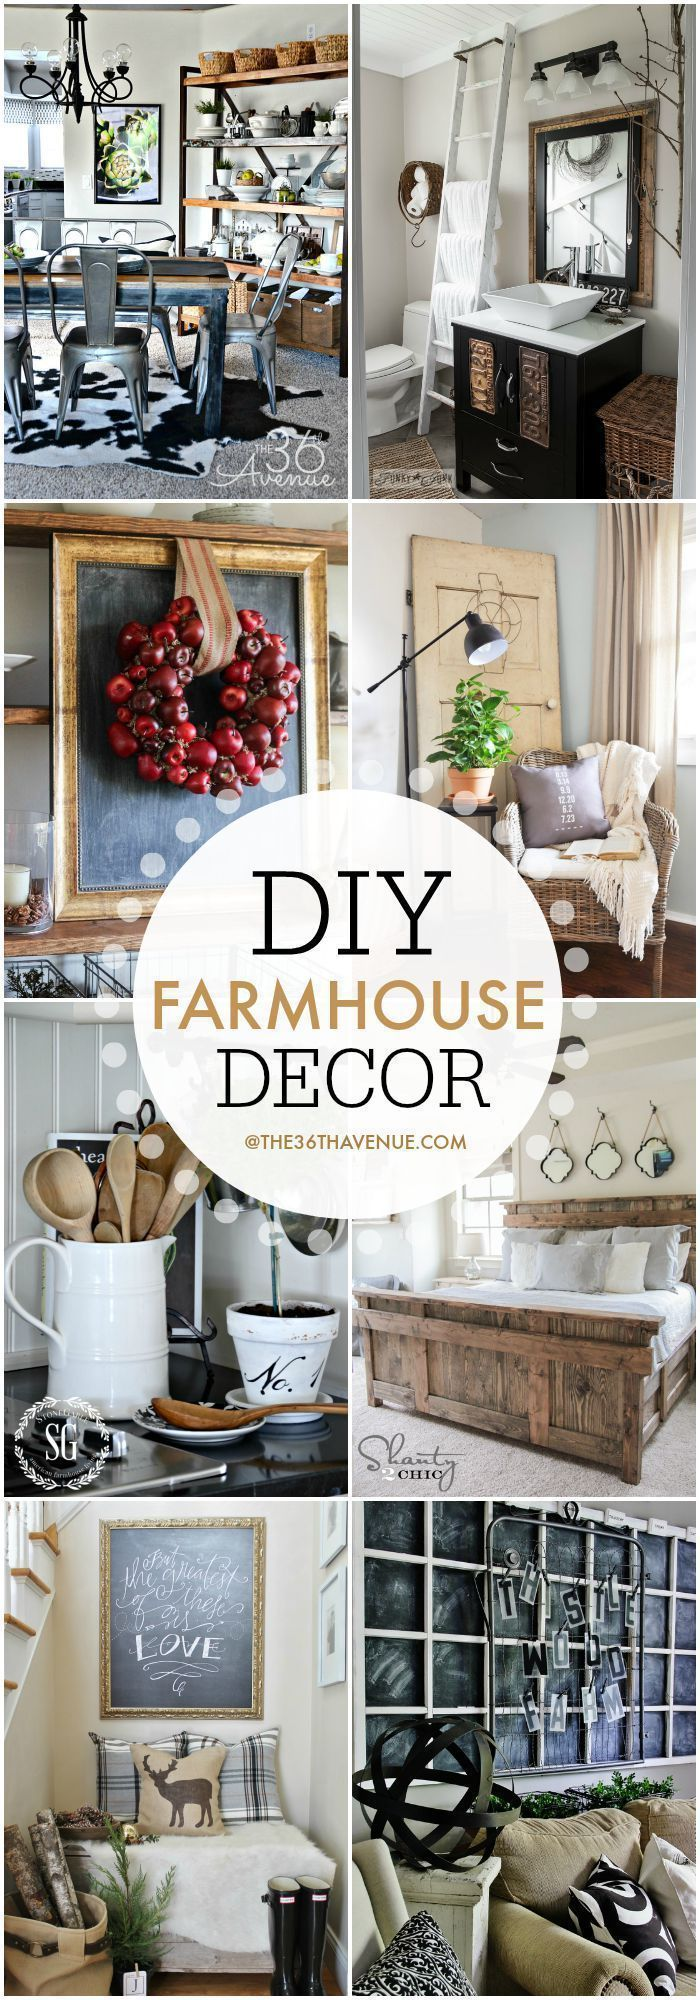 Farmhouse Home Decor Ideas | Decorating, Farmhouse style and Farm house